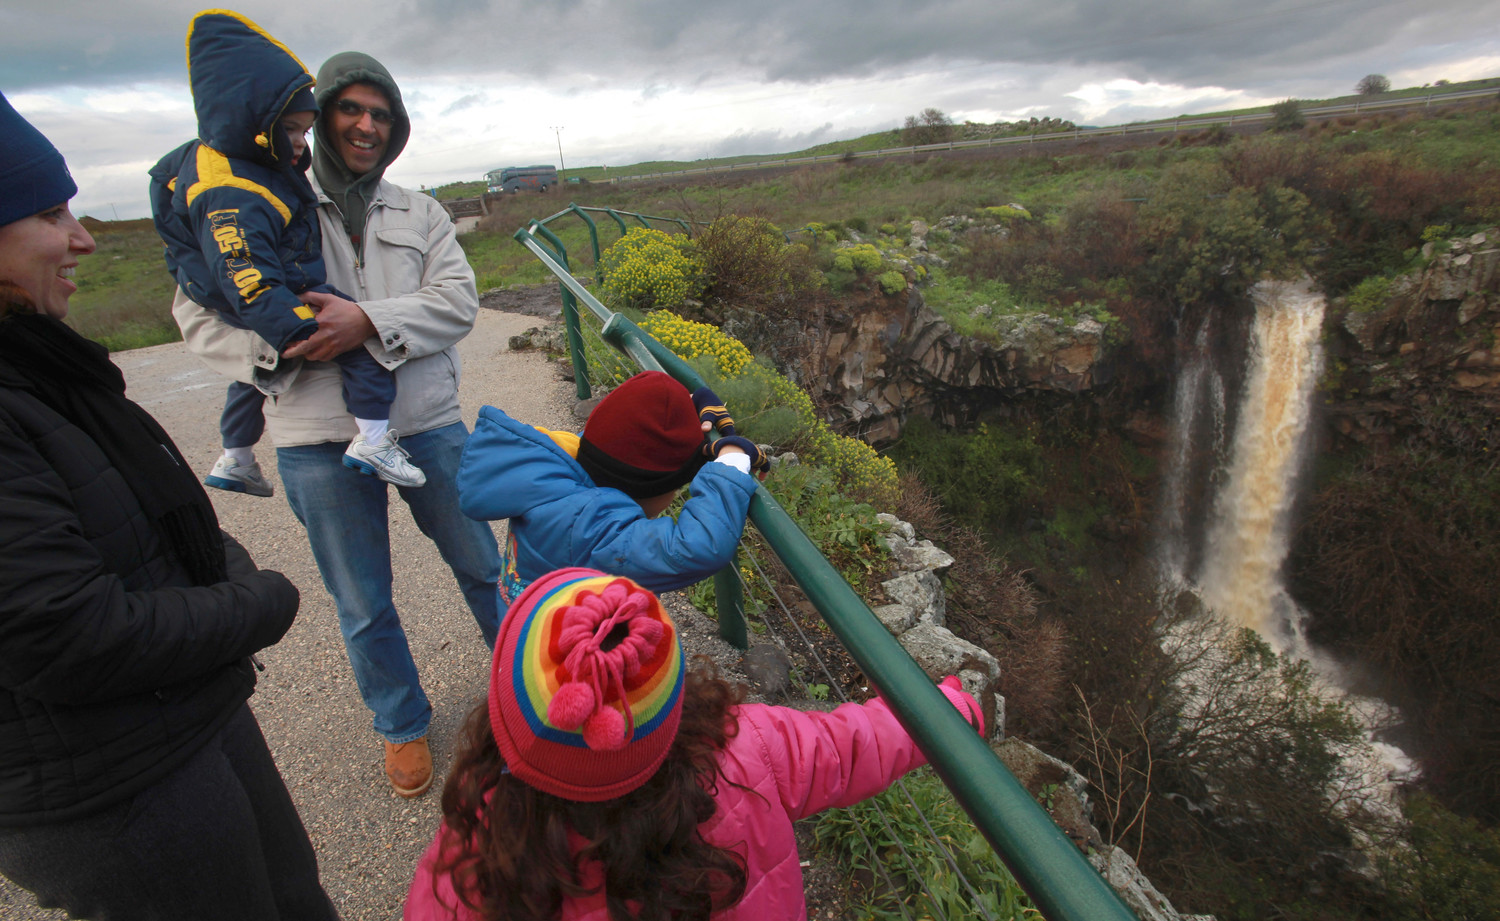 An Israeli family views Ayit Falls near the town of Katzrin on the Golan Heights.